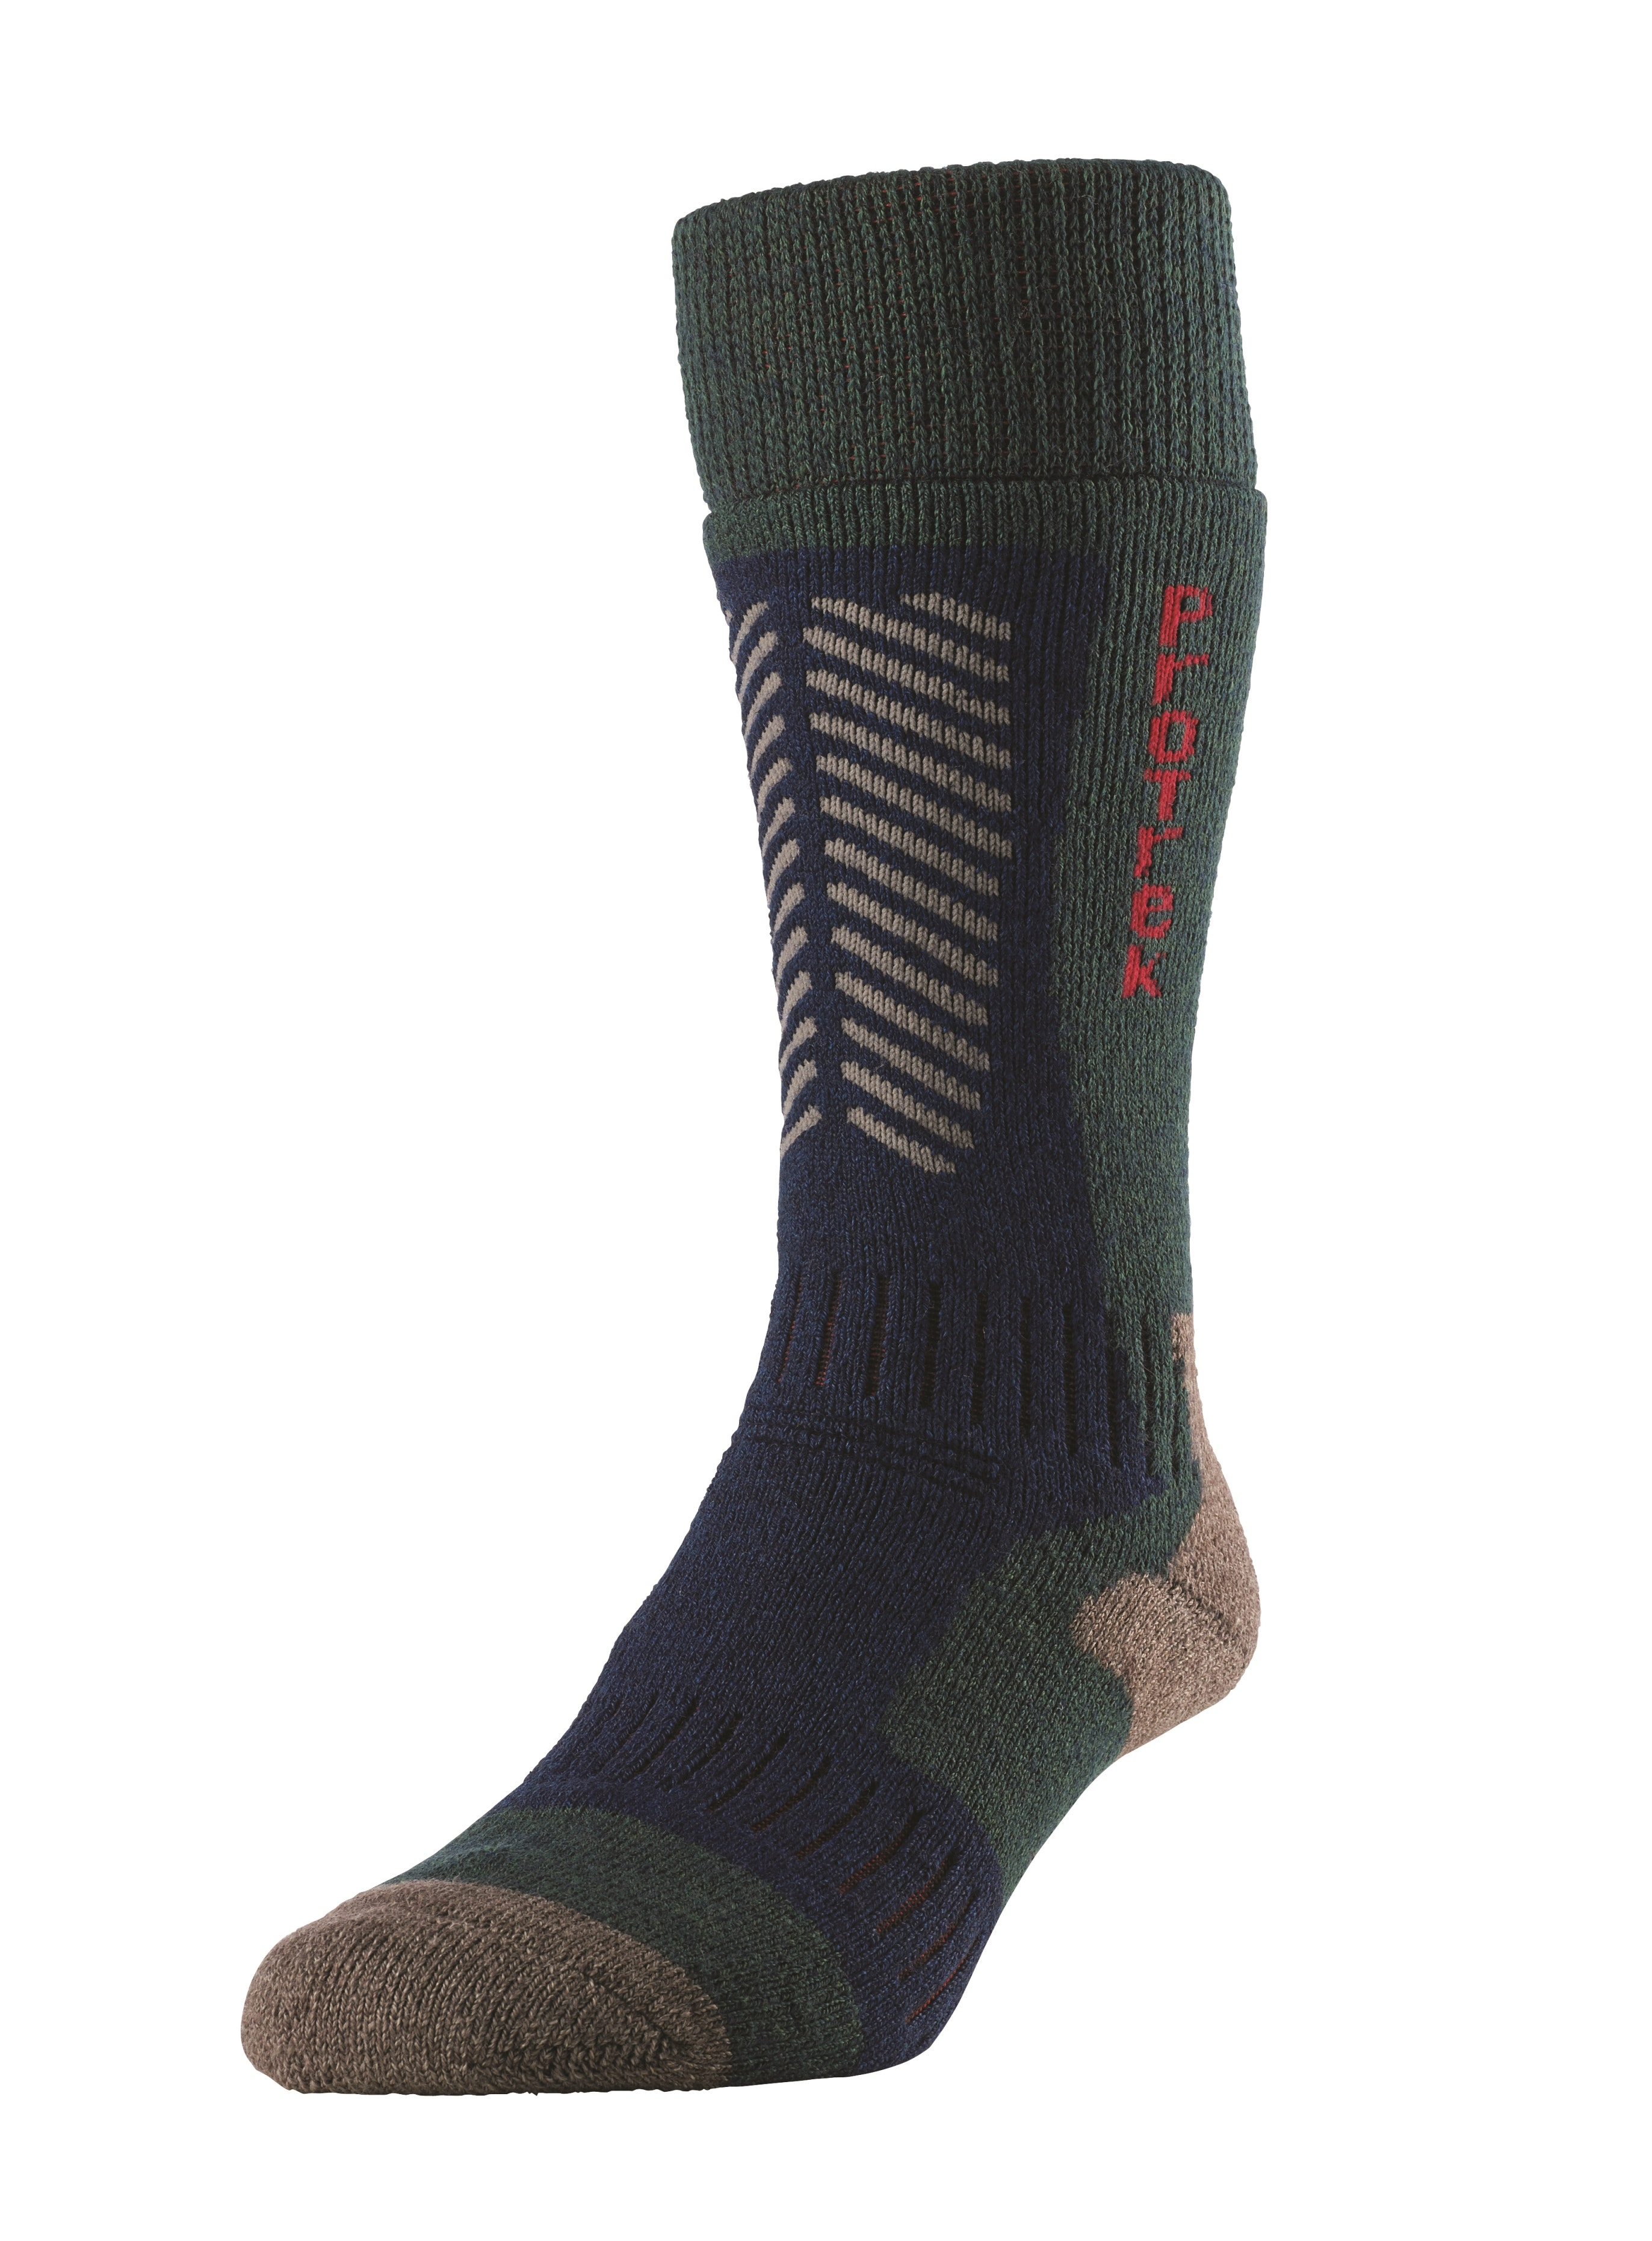 Hj hall  832 extreme protrek   technical walking sock bottle  13 75